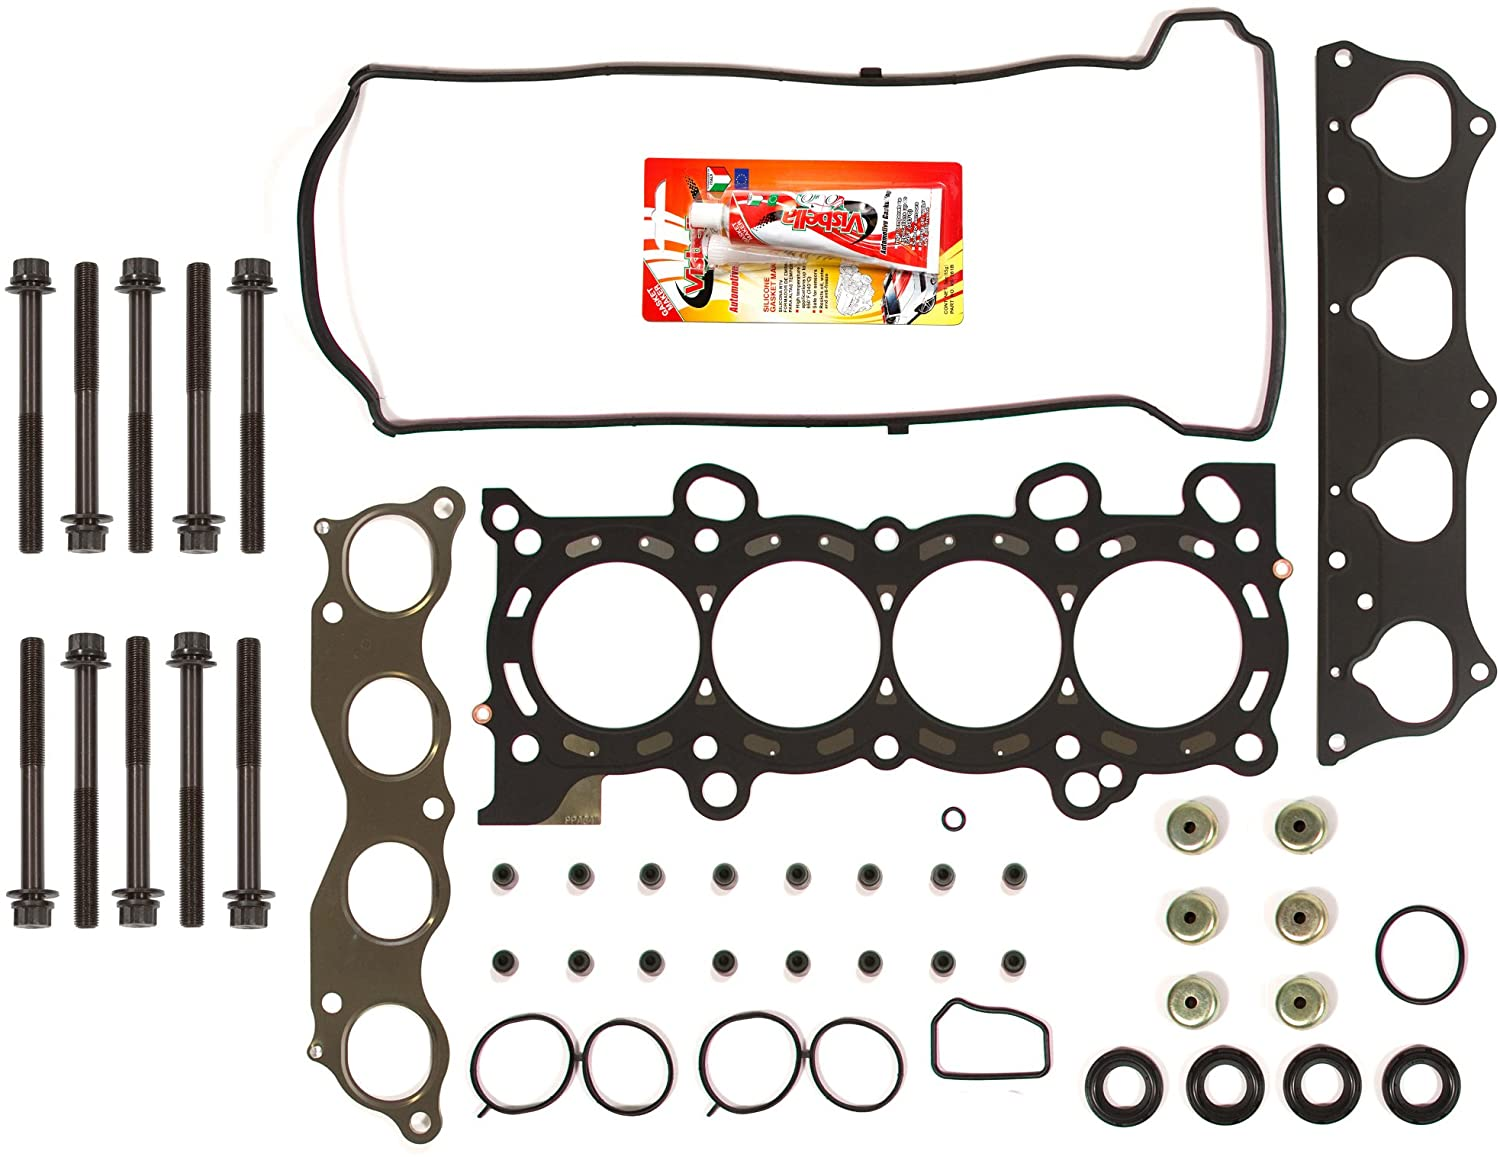 Compatible With 02-06 Honda CRV 2.4 K24A1 DOHC Head Gasket Set Head Bolts